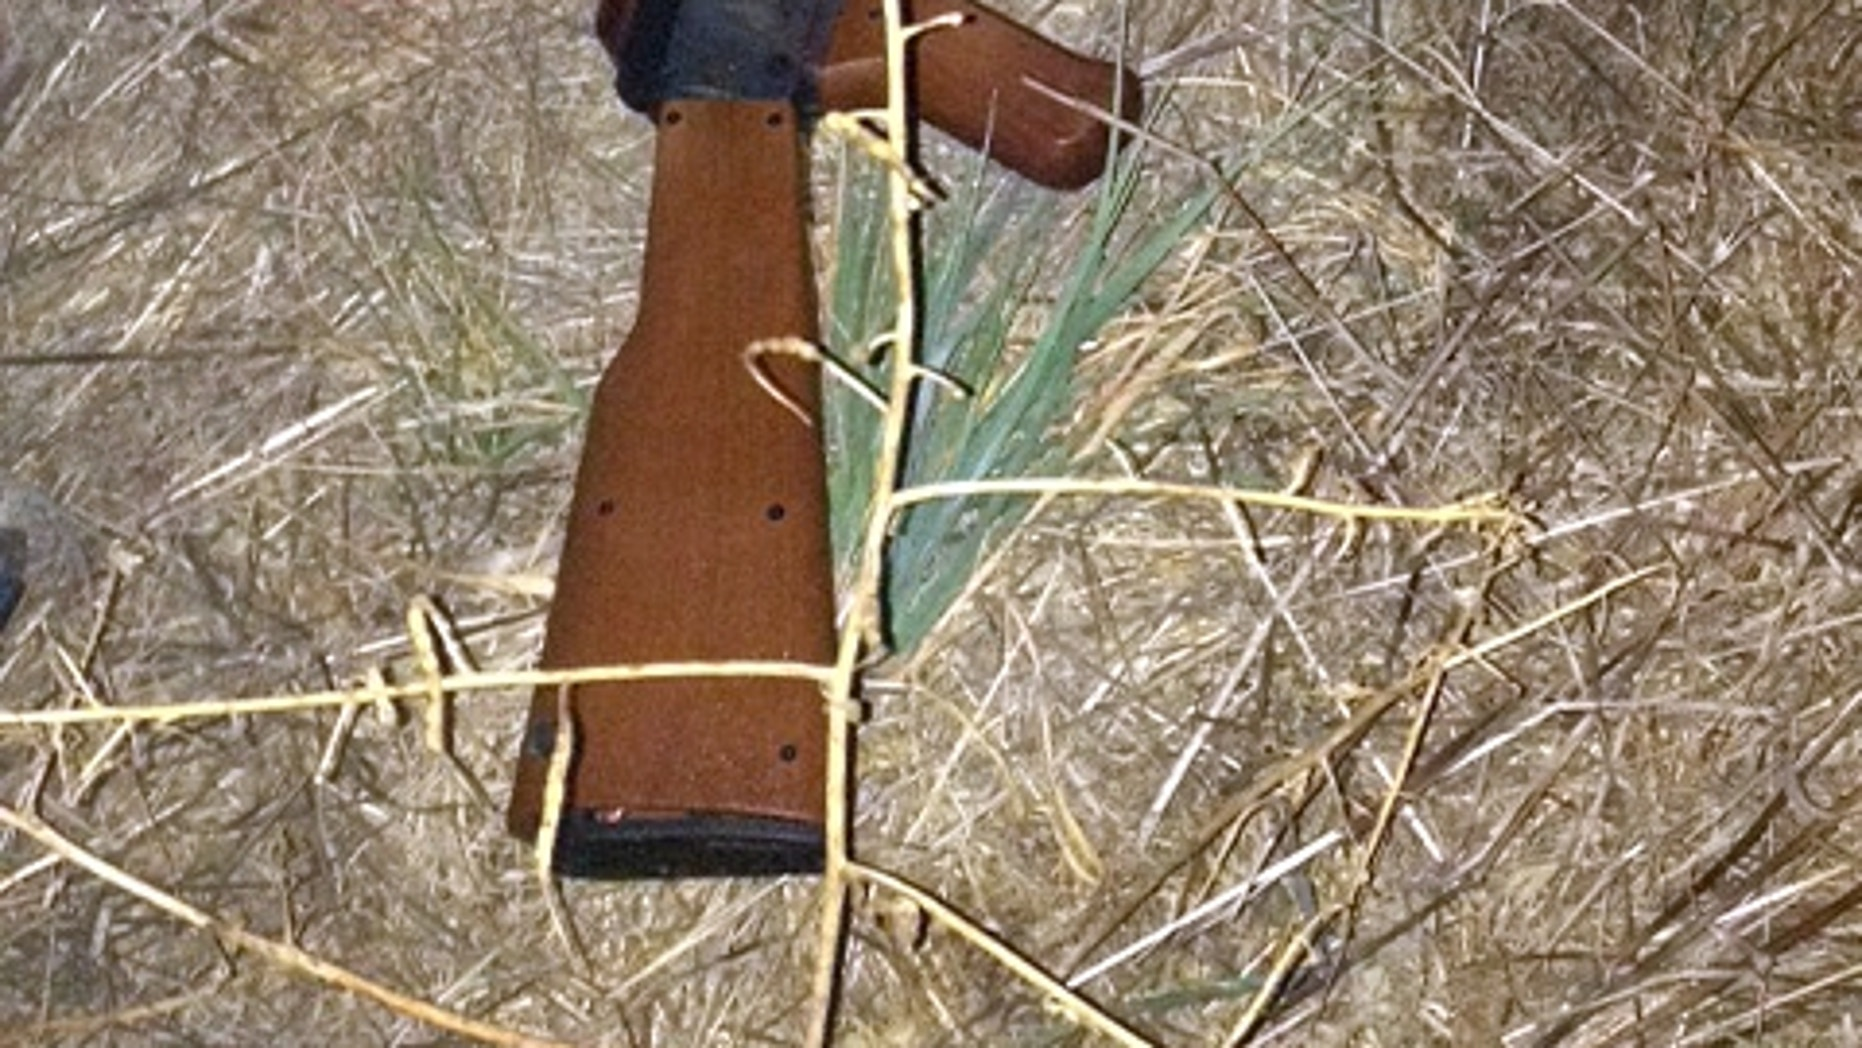 The replica rifle that was being carried by a 13-year-old boy in Santa Rosa, Calif., on Tuesday, Oct. 22, 2013.